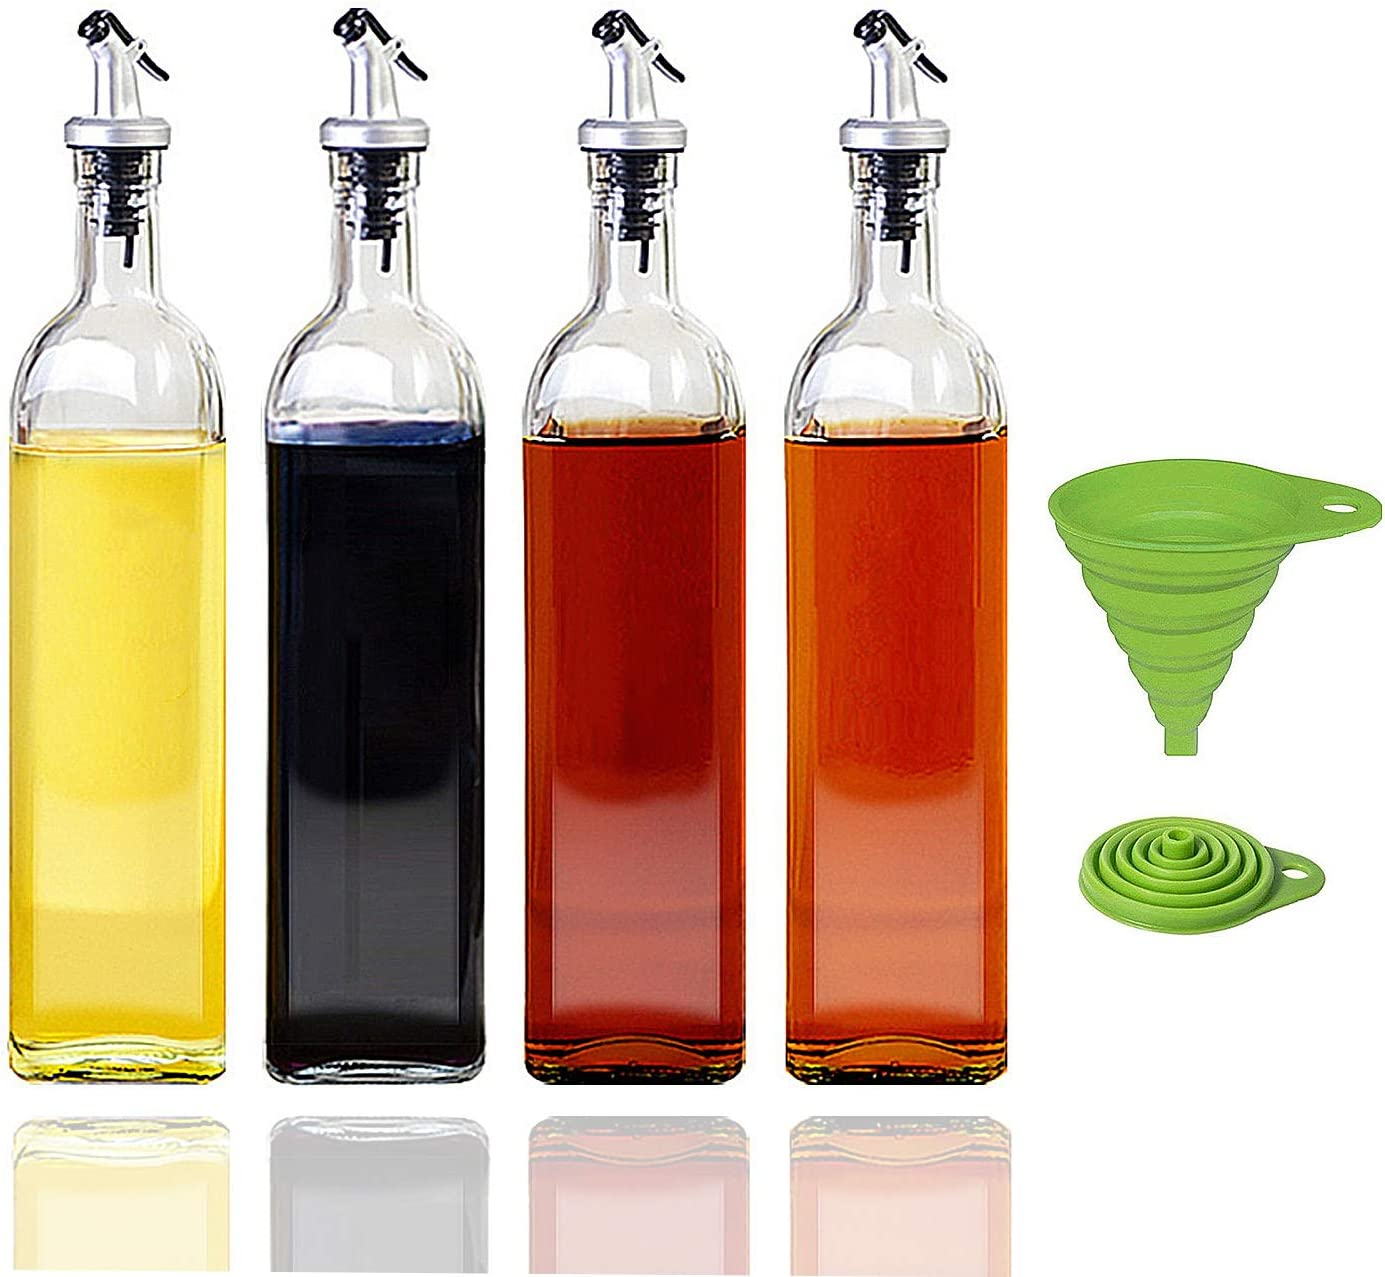 17oz Olive Albuquerque Mall Oil Dispenser Bottle 5 ☆ very popular Set Pcs Silicone Collapsi 1 with